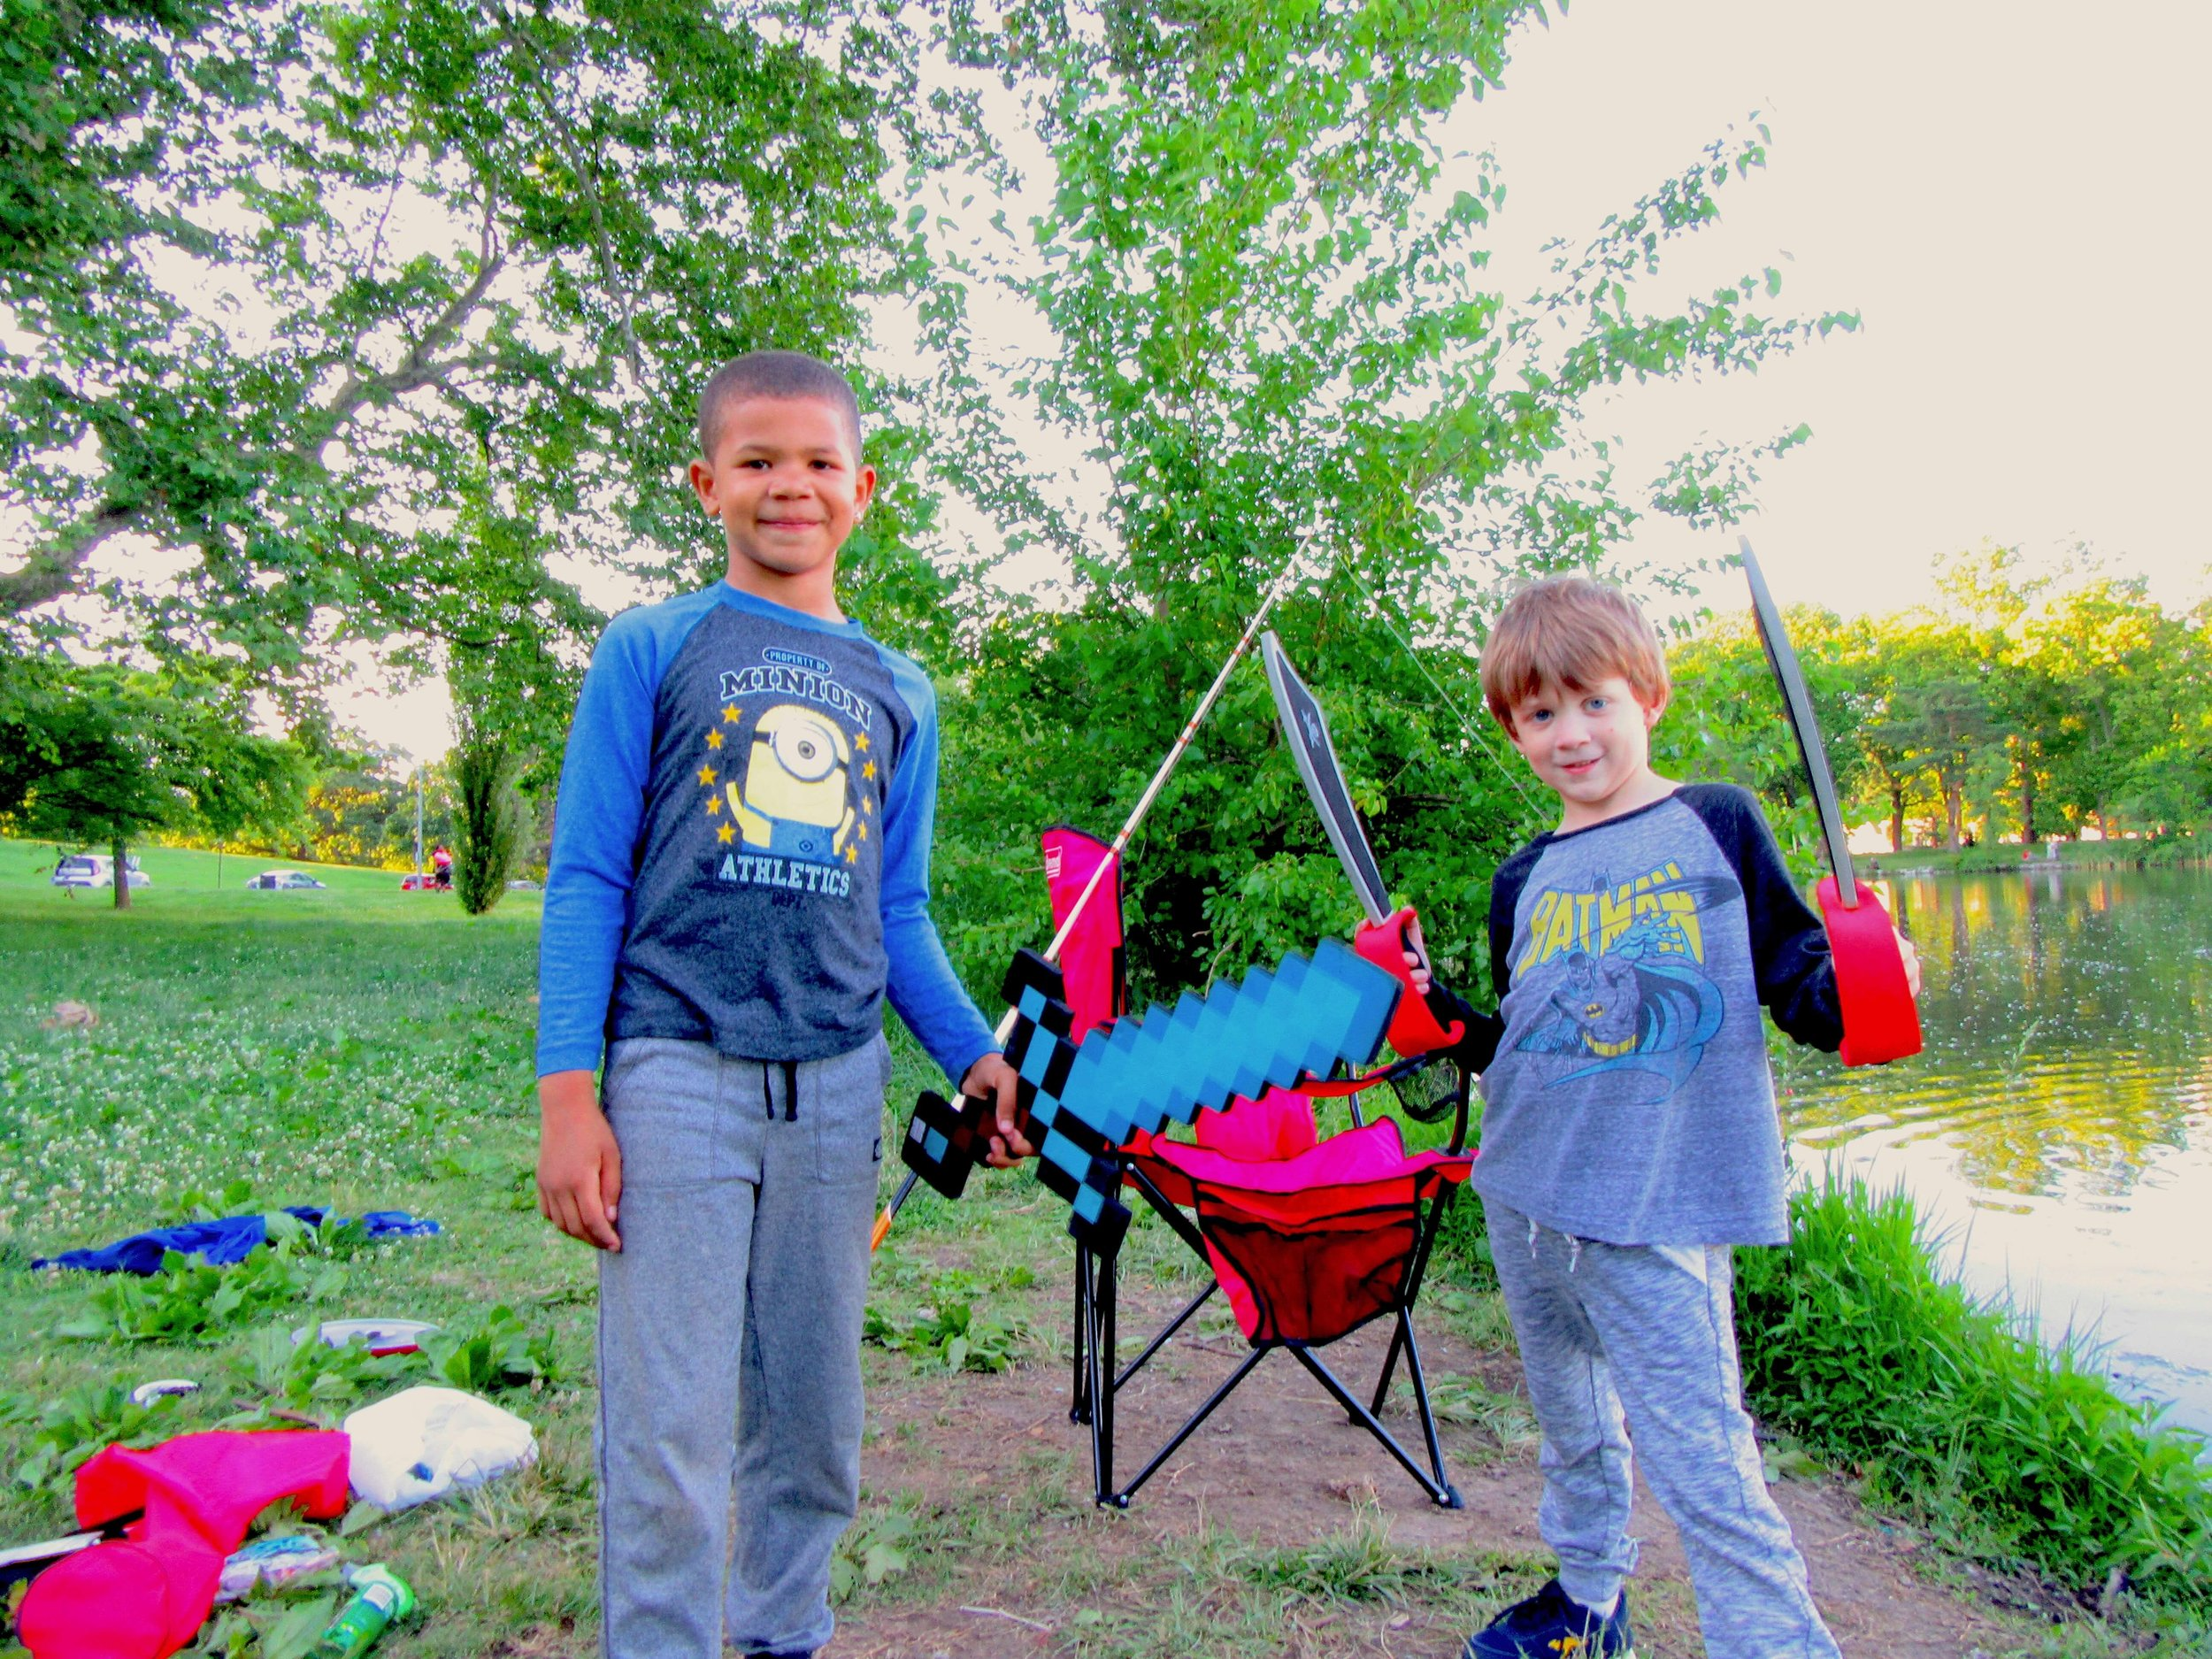 Mark's son Seamus and his friend Angelo are certain swords are a very important part of fishing.